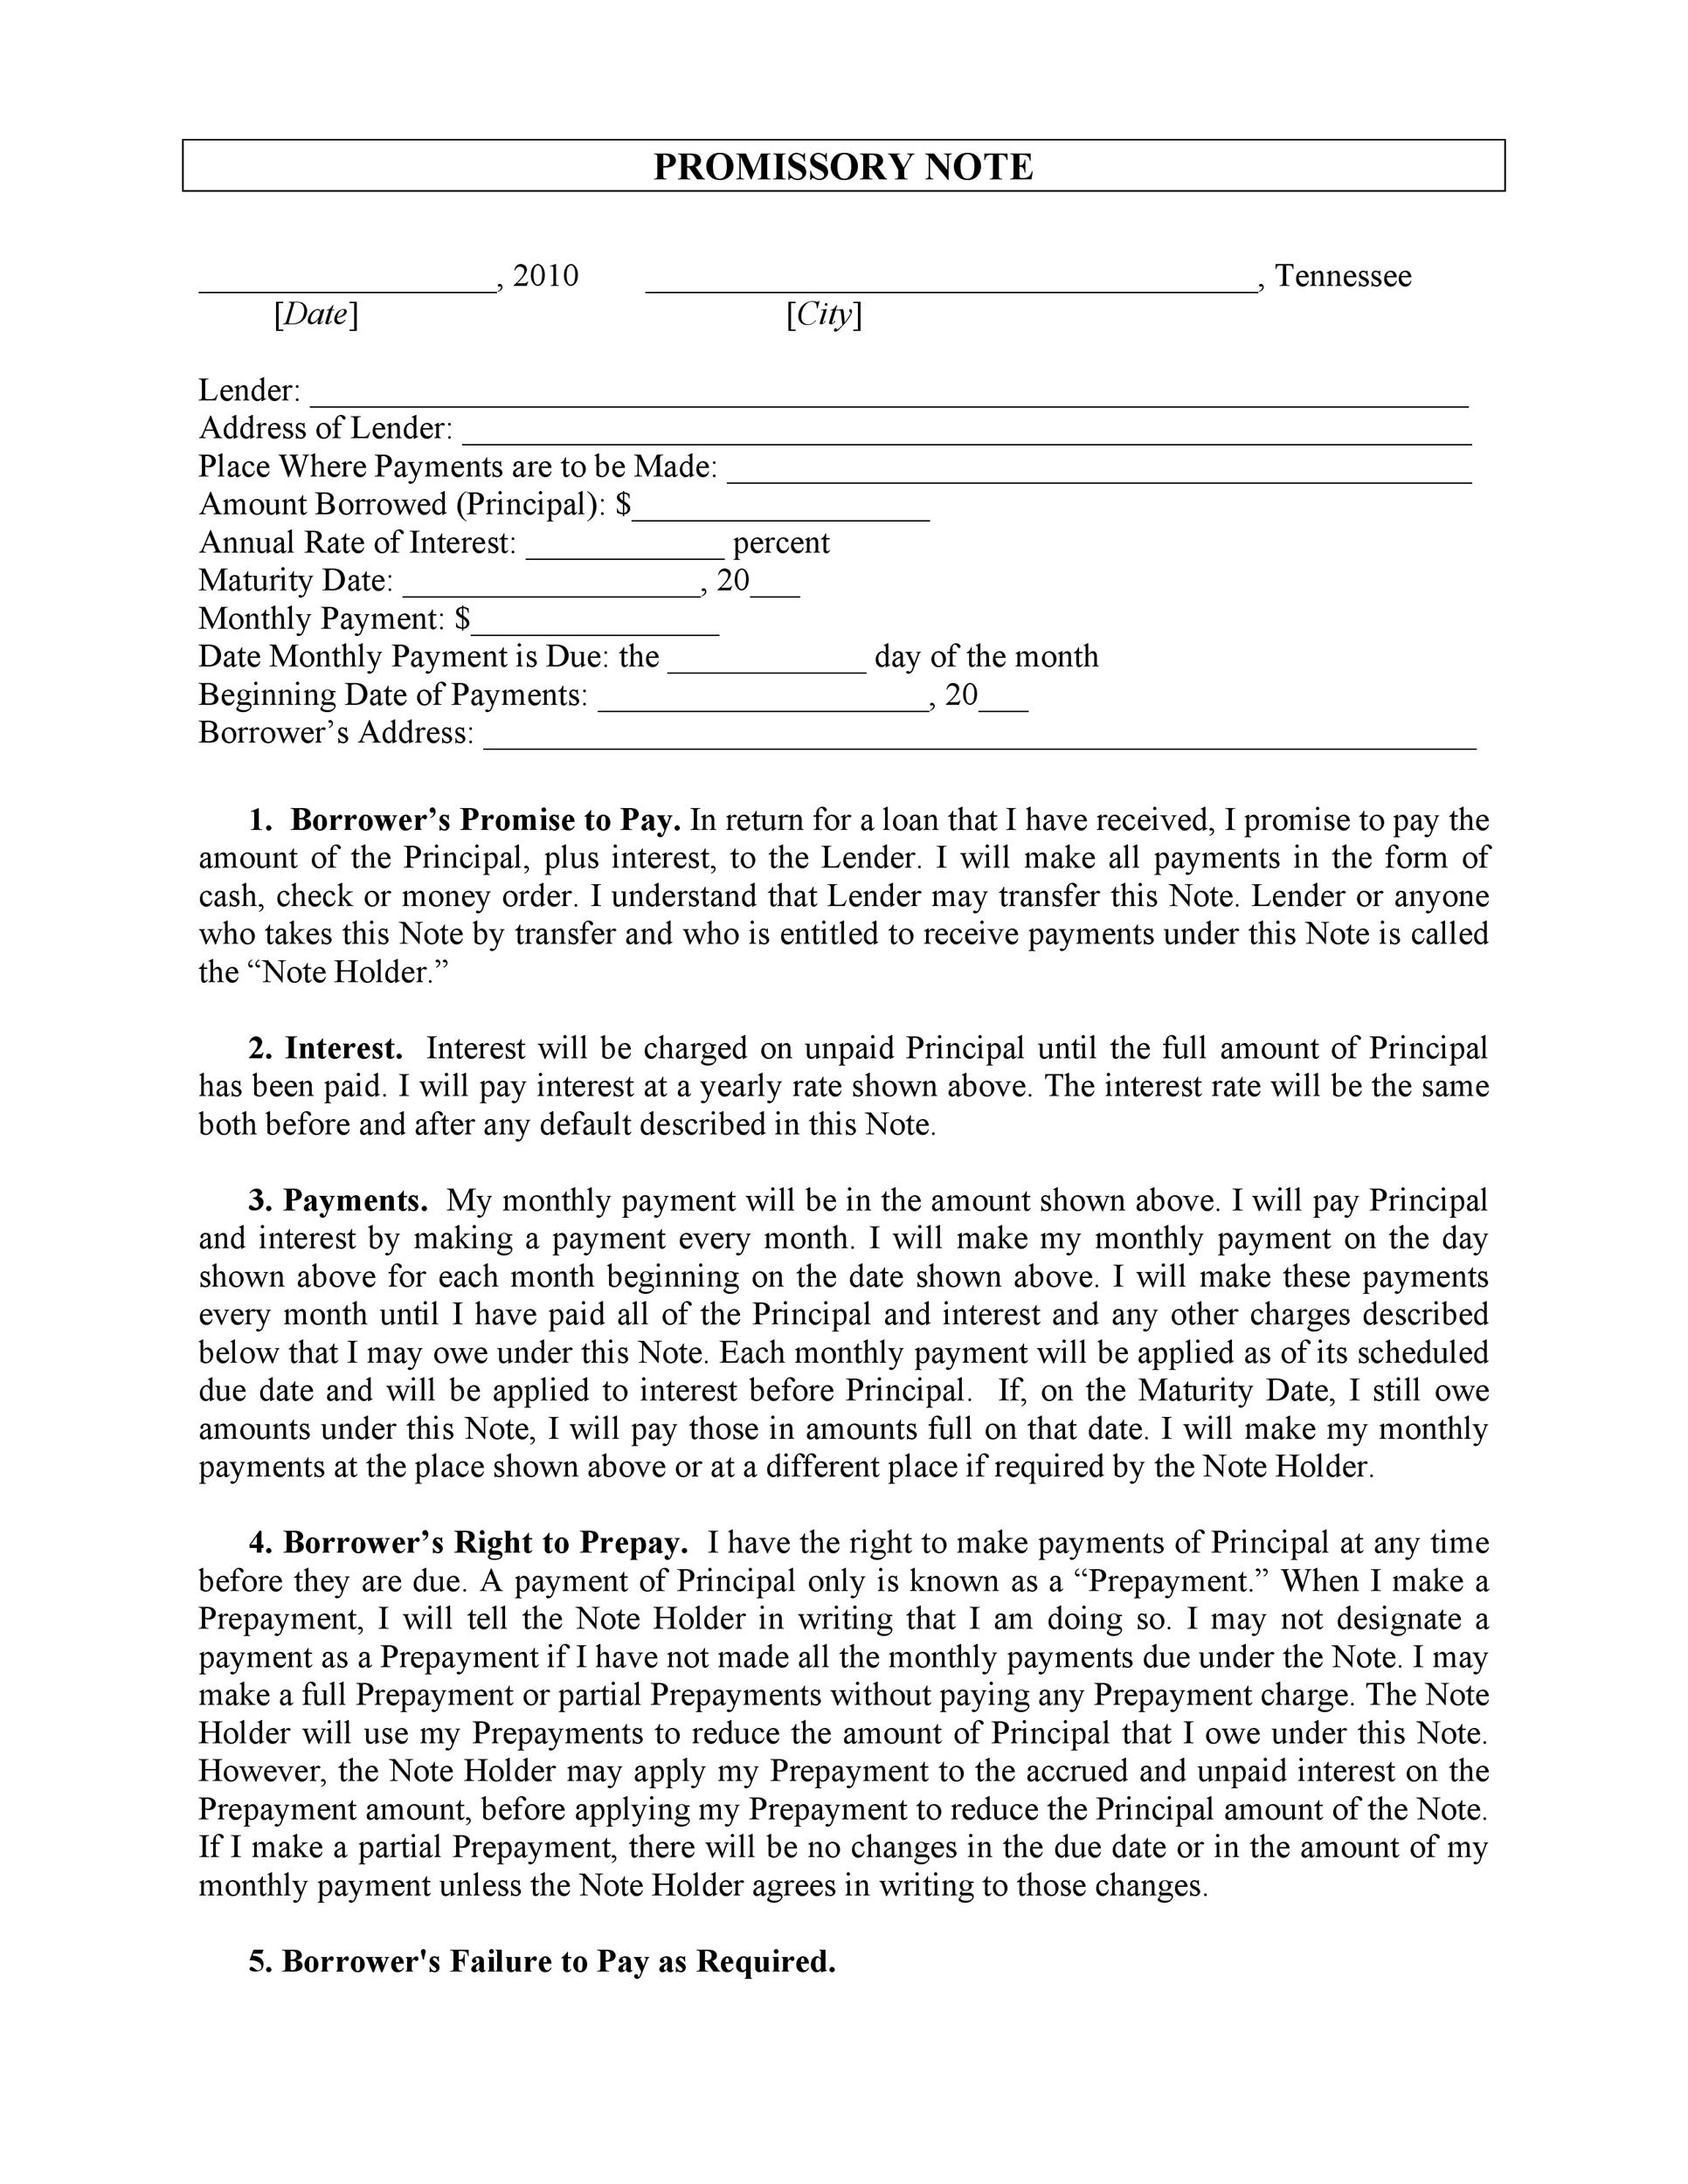 Free promissory note template 27